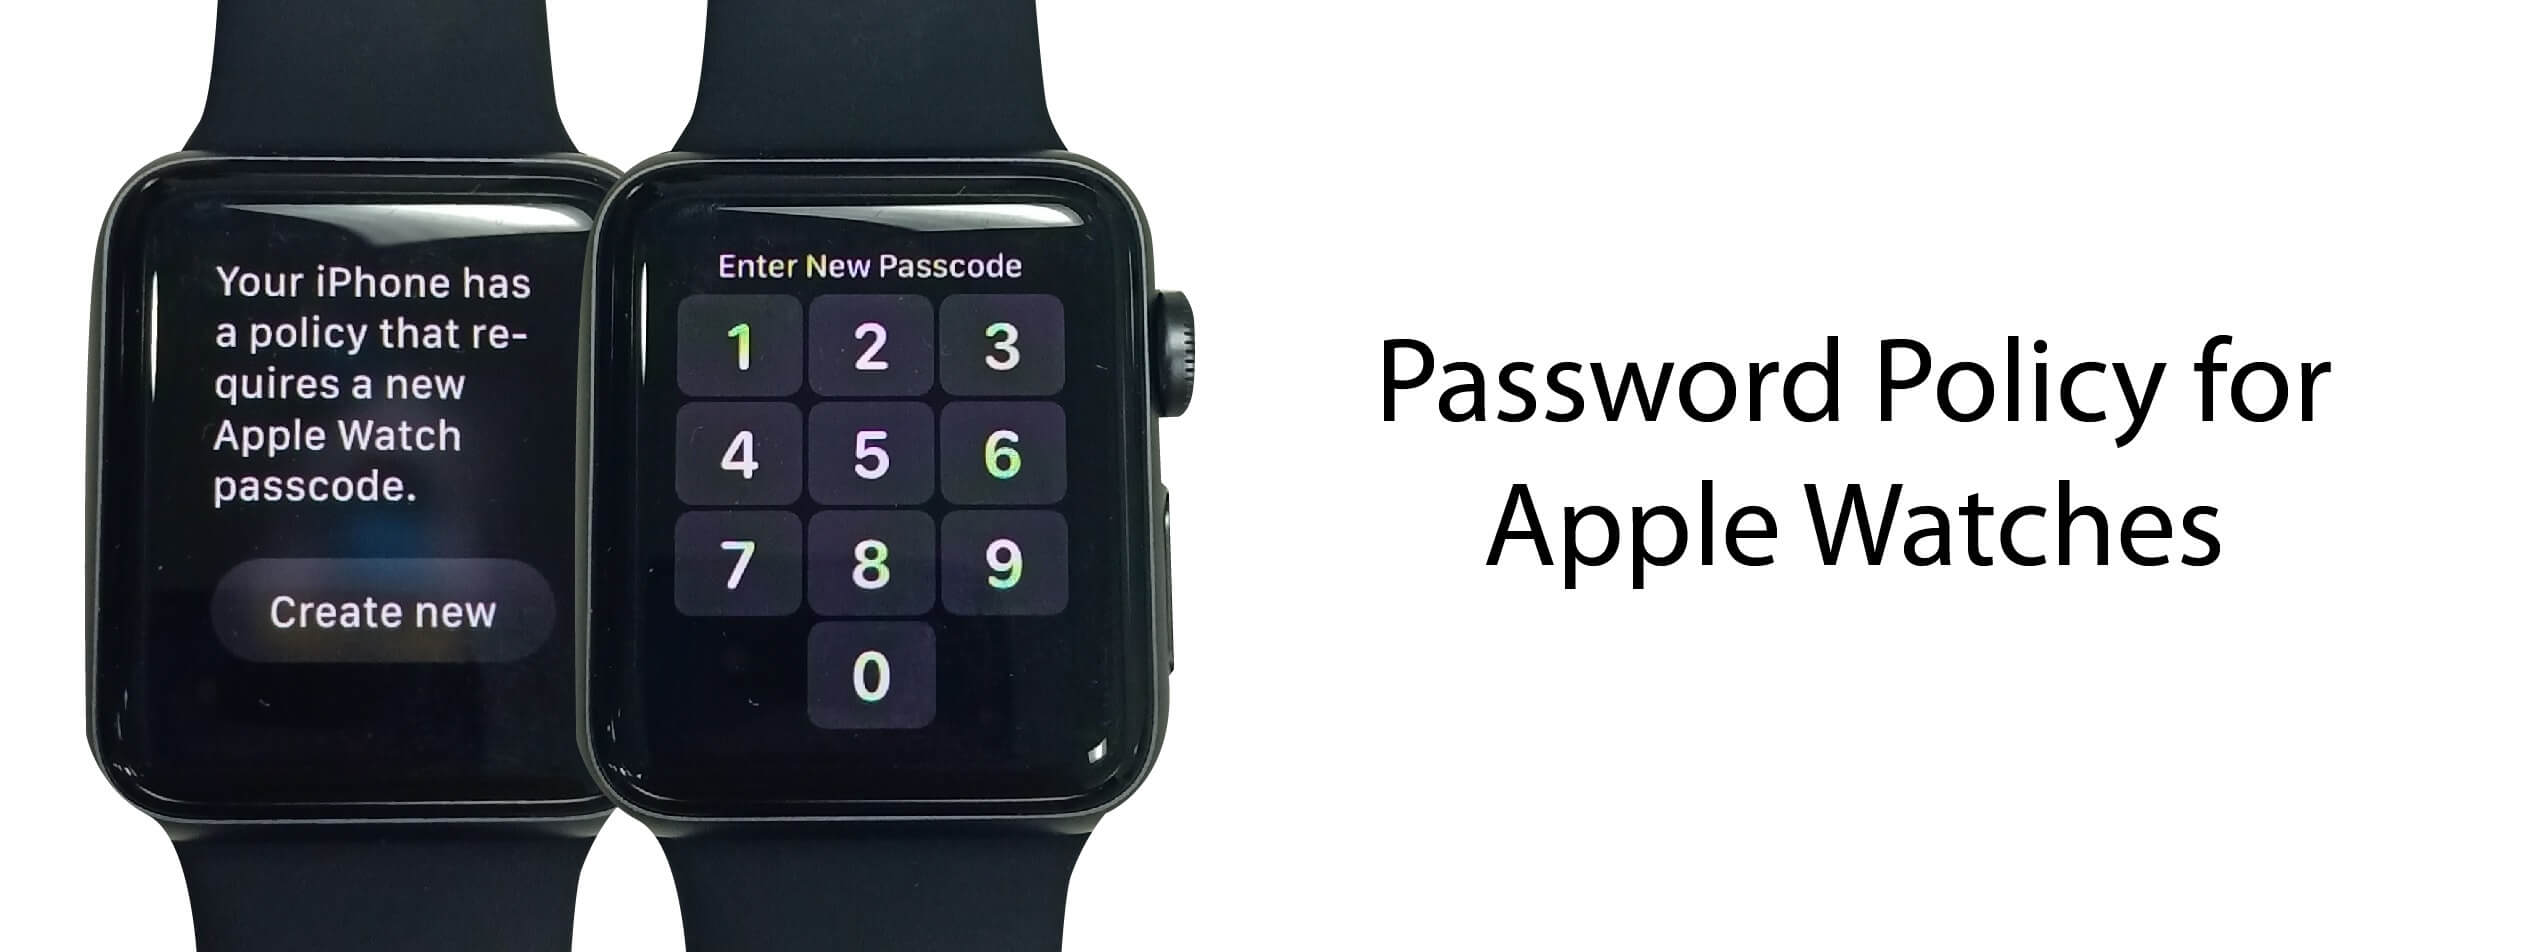 Password Policy Apps Apple Watch (1)